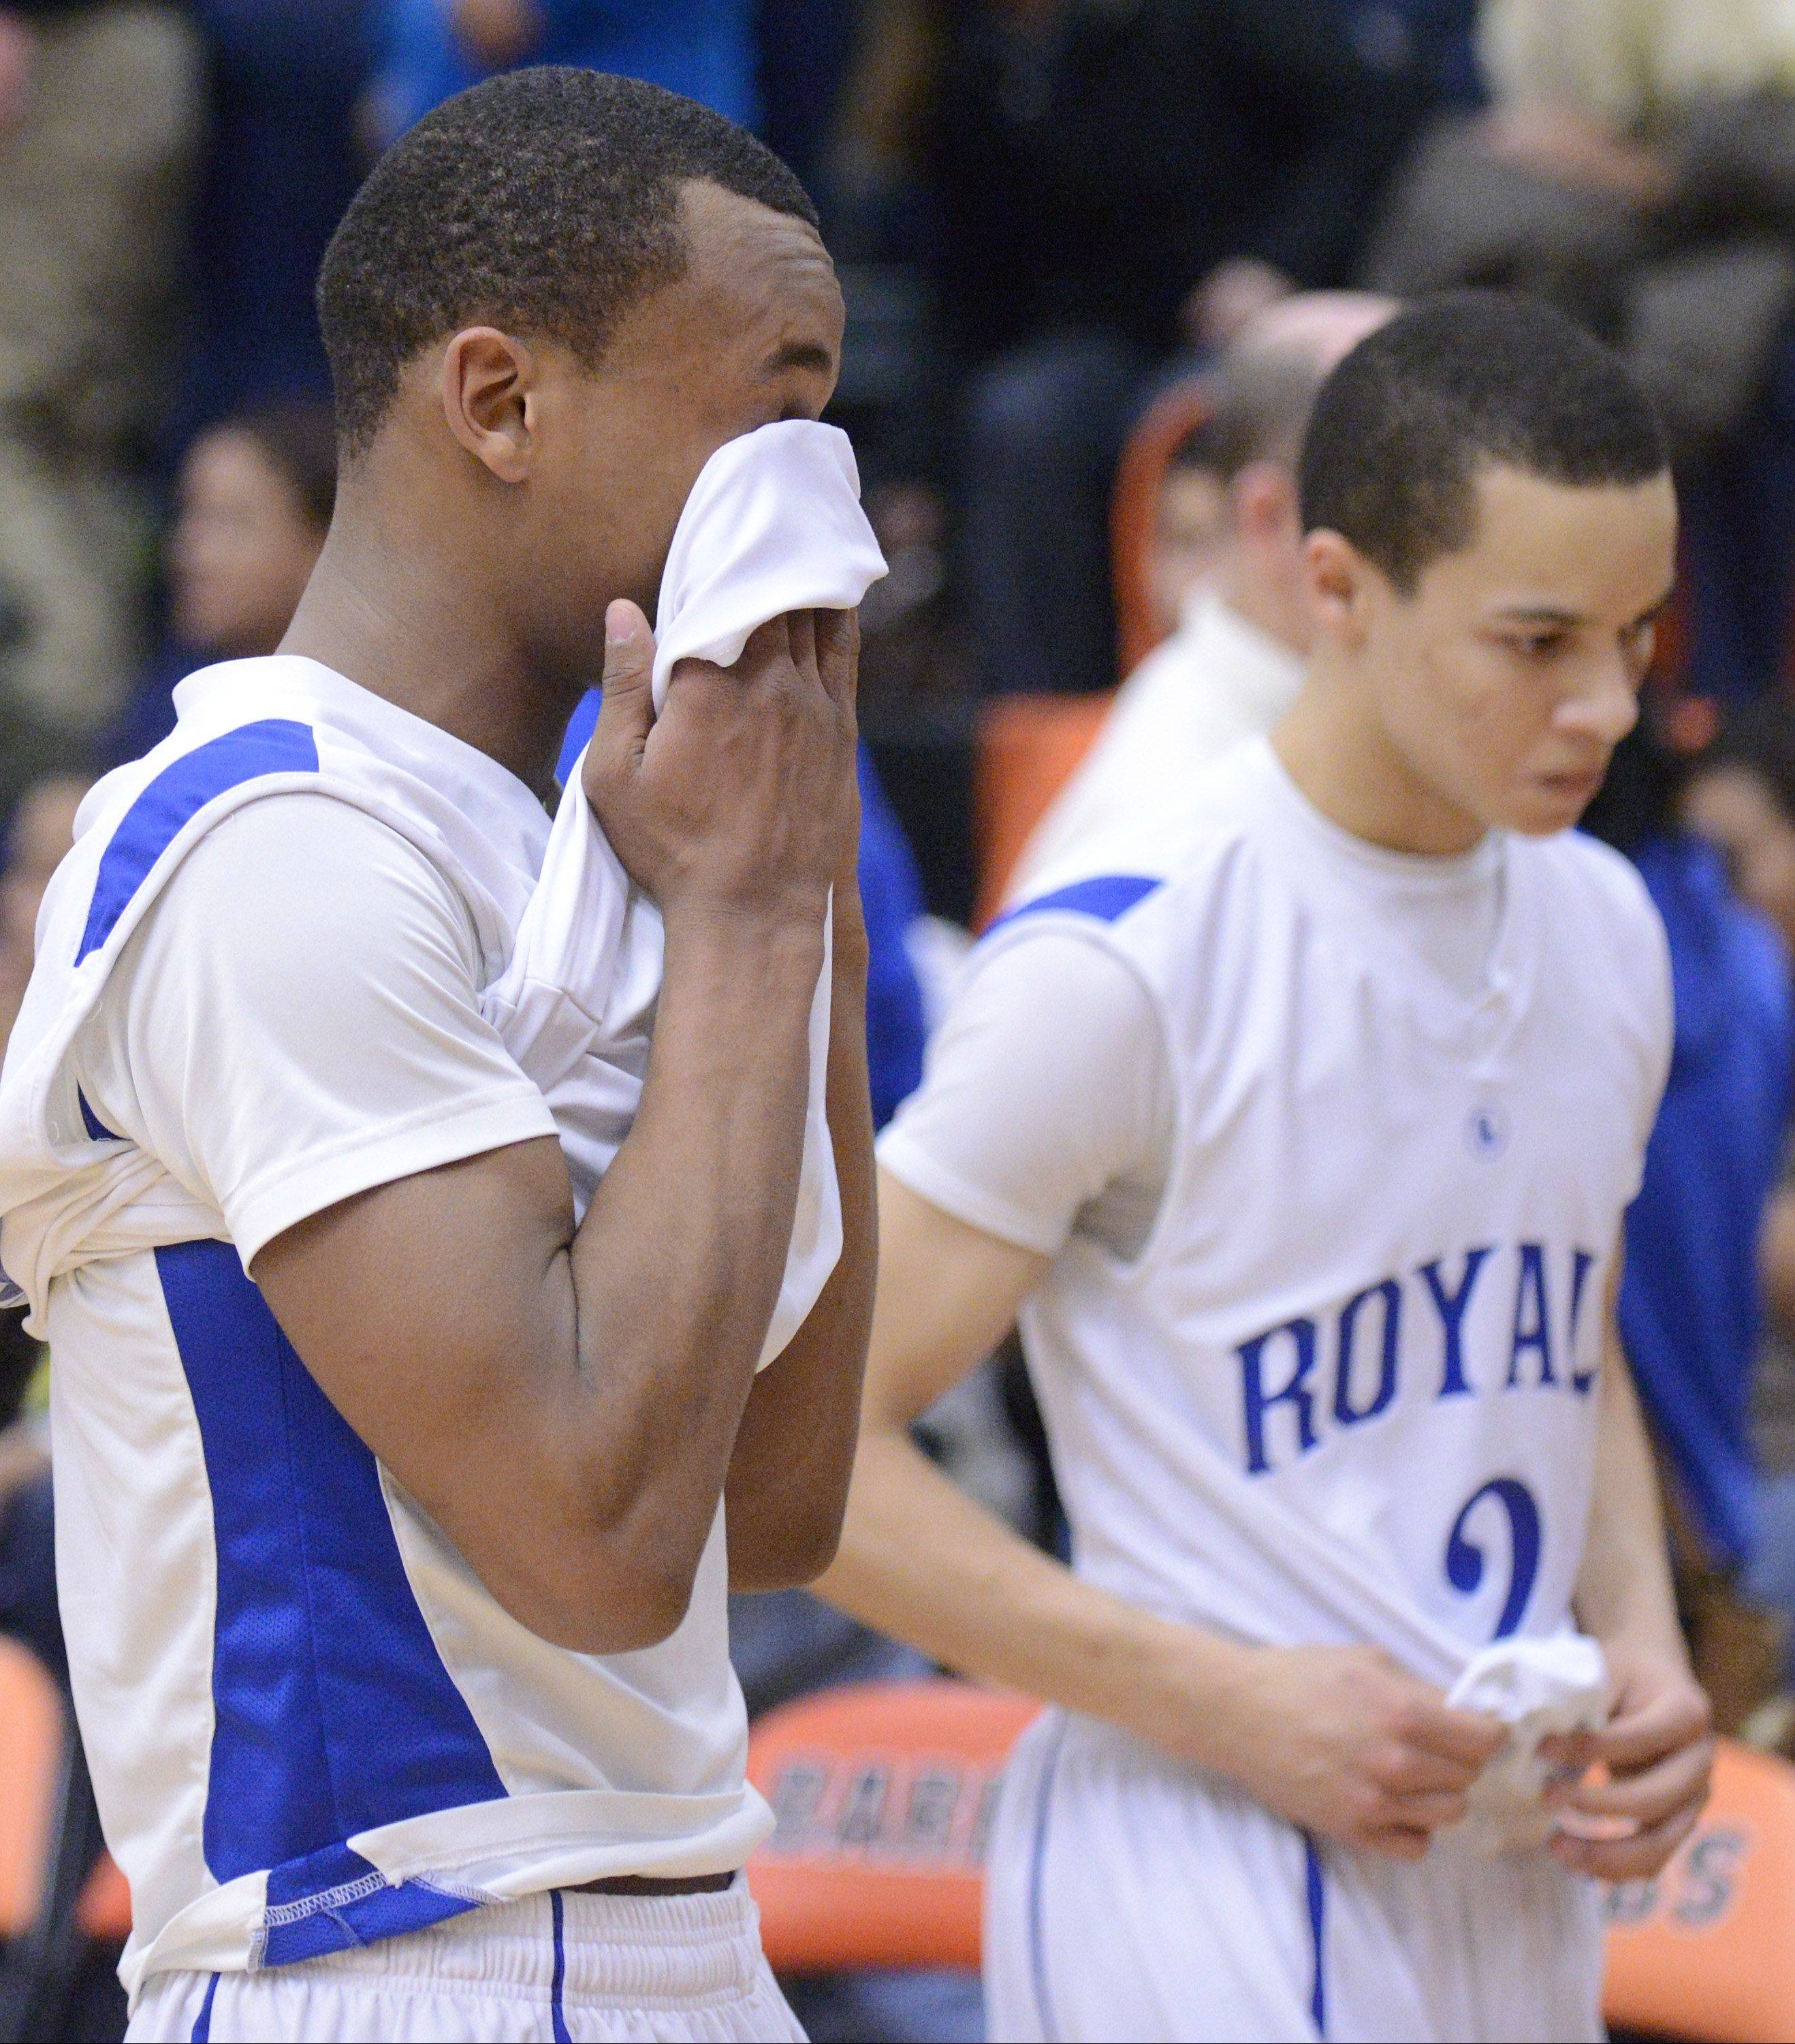 Larkin's Quentin Ruff wipes tears from his eyes as he walks with teammate Derrick Streety after the Royals' loss to Rockford Jefferson.